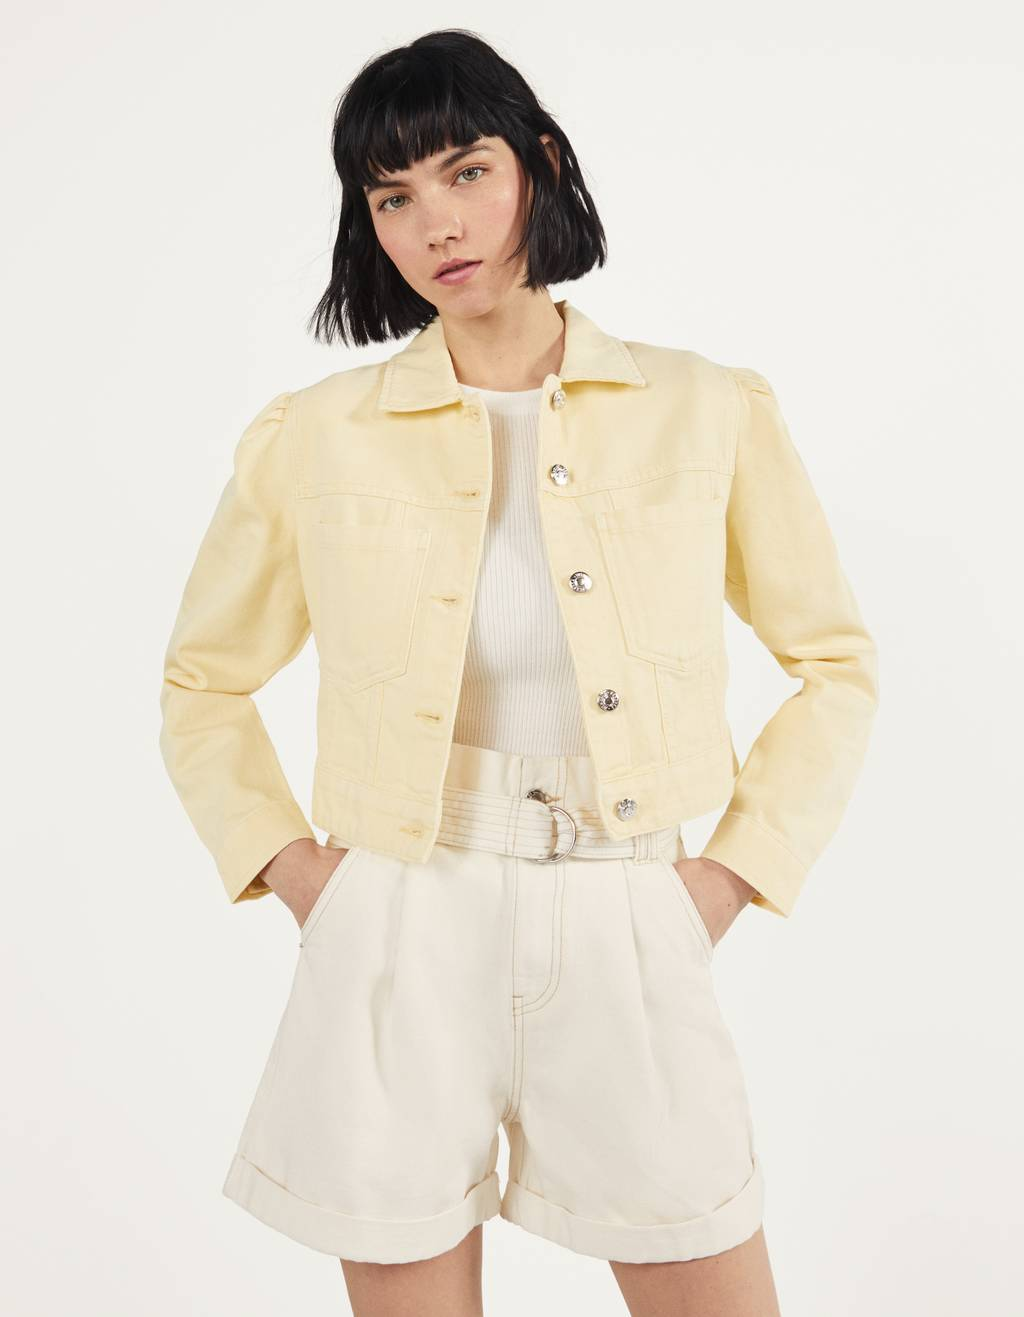 Cropped jacket with full sleeves